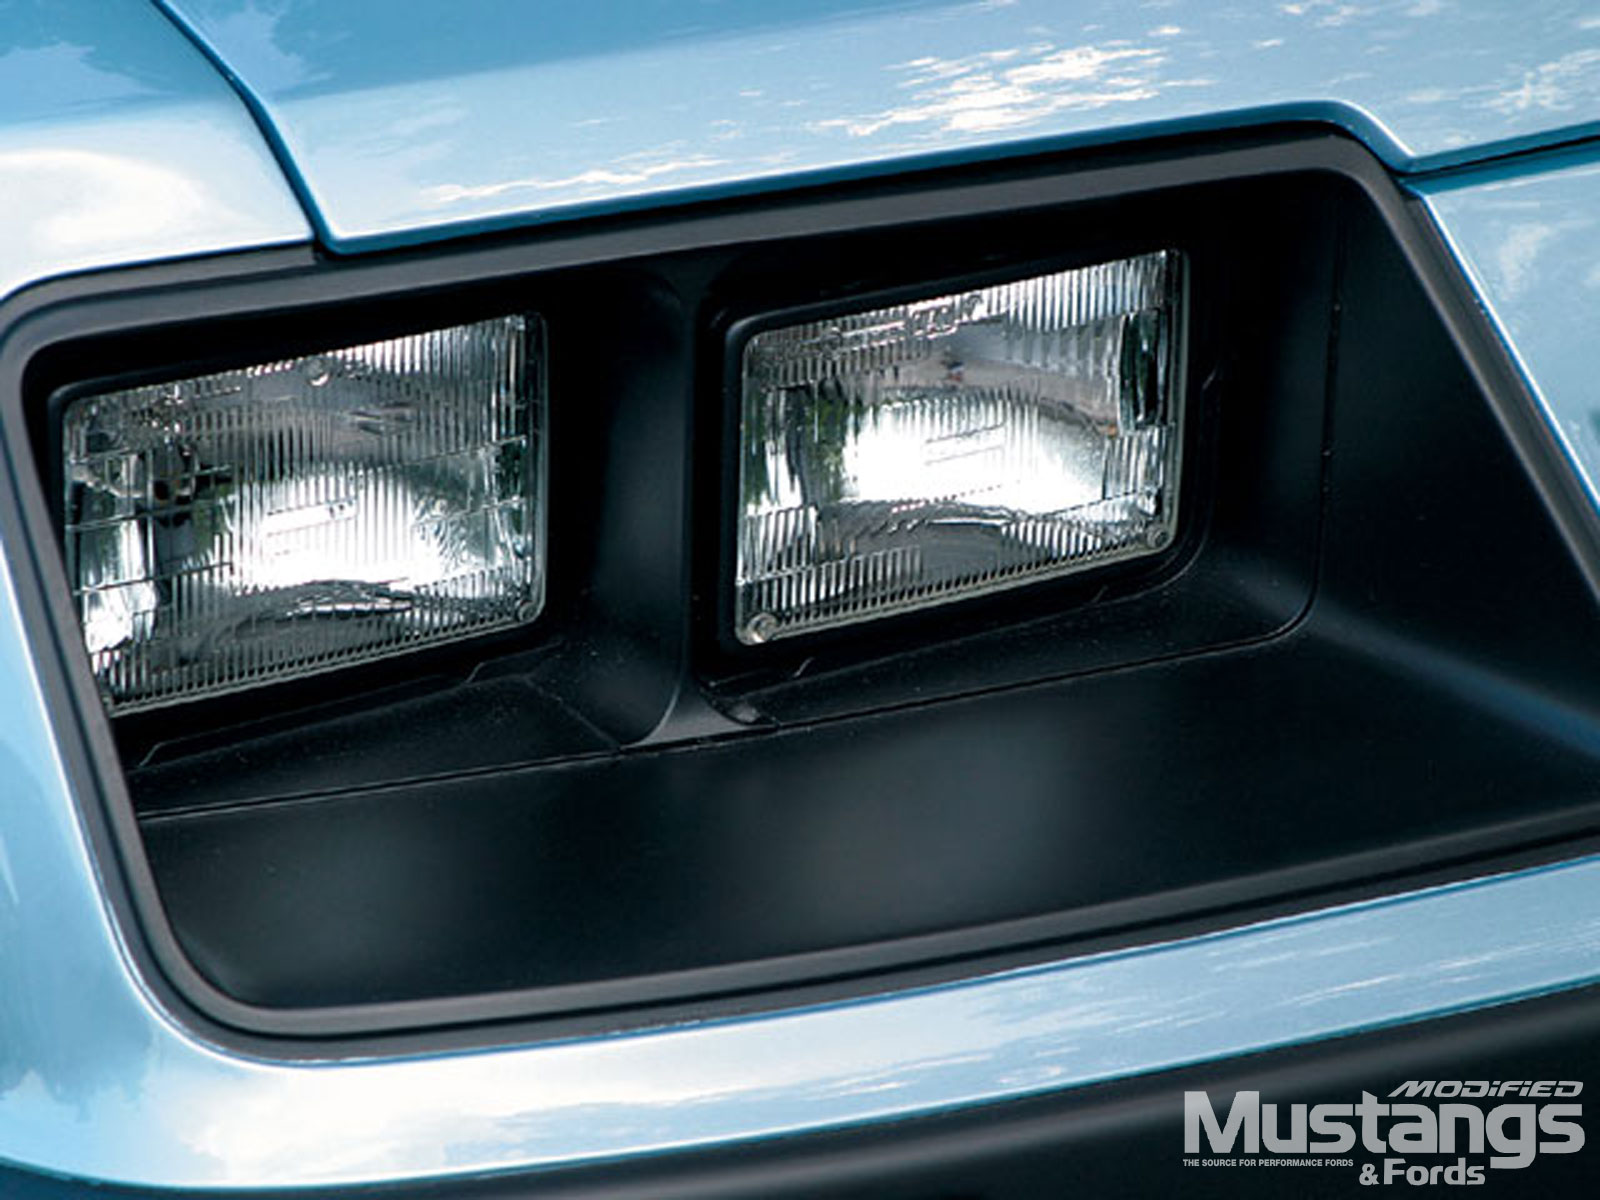 1985 Ford Mustang Gt Headlights